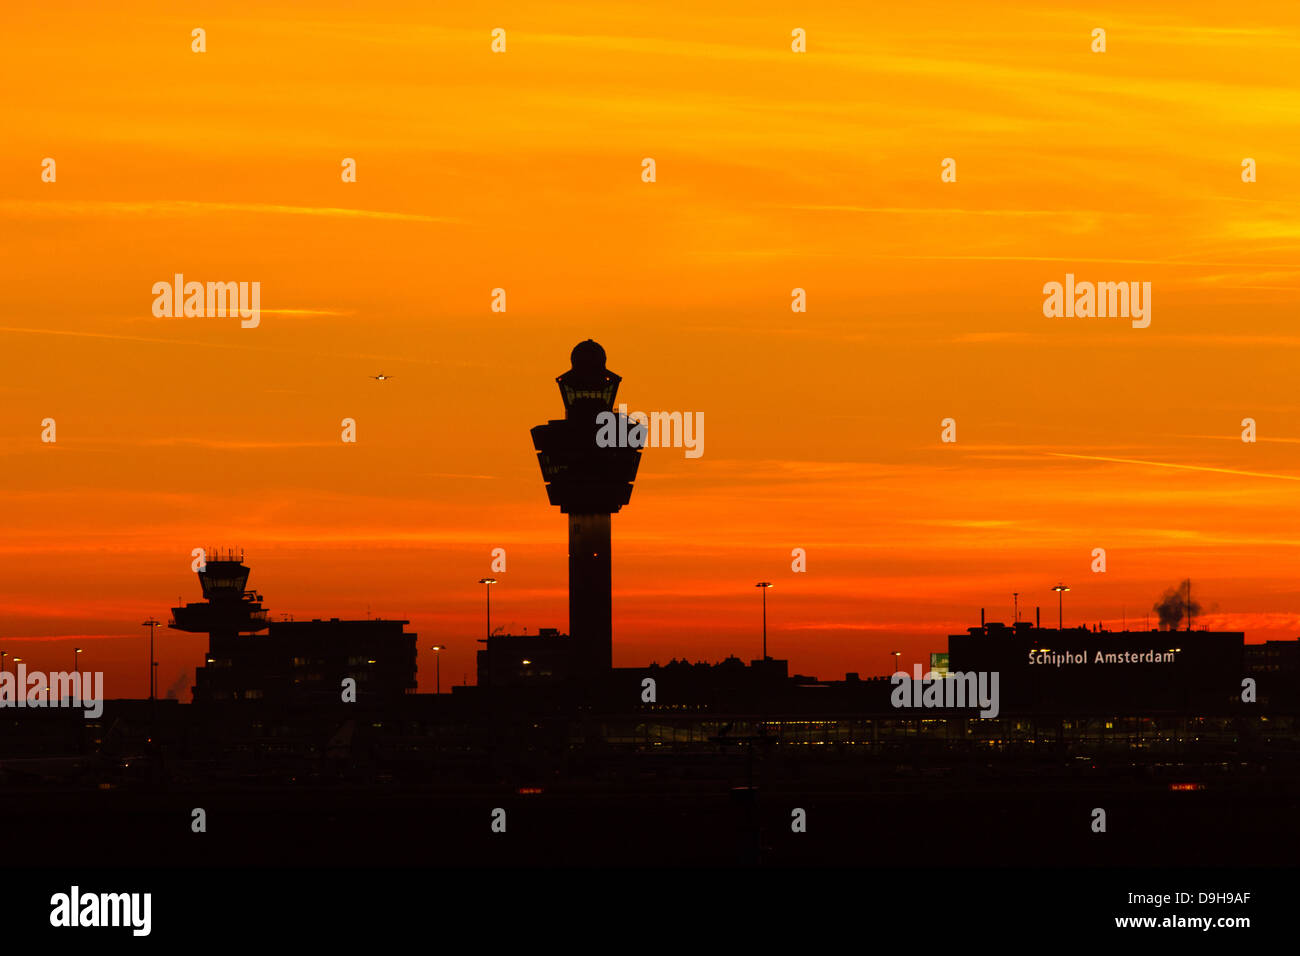 Amsterdam-Schiphol airport at sunset - Stock Image